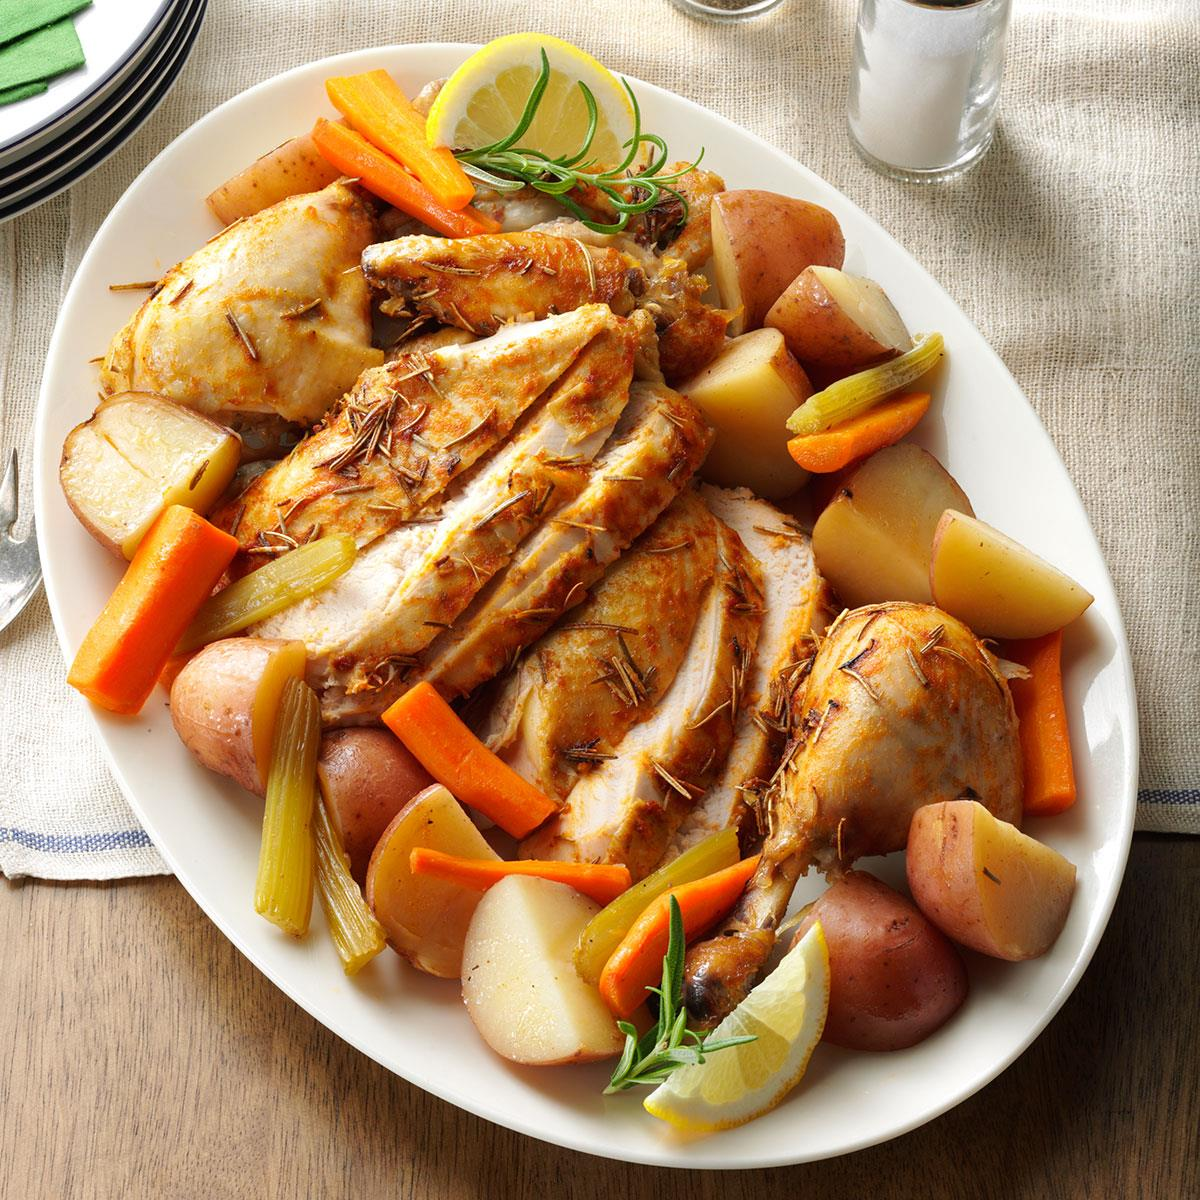 Slow roasted chicken with vegetables taste of home forumfinder Images